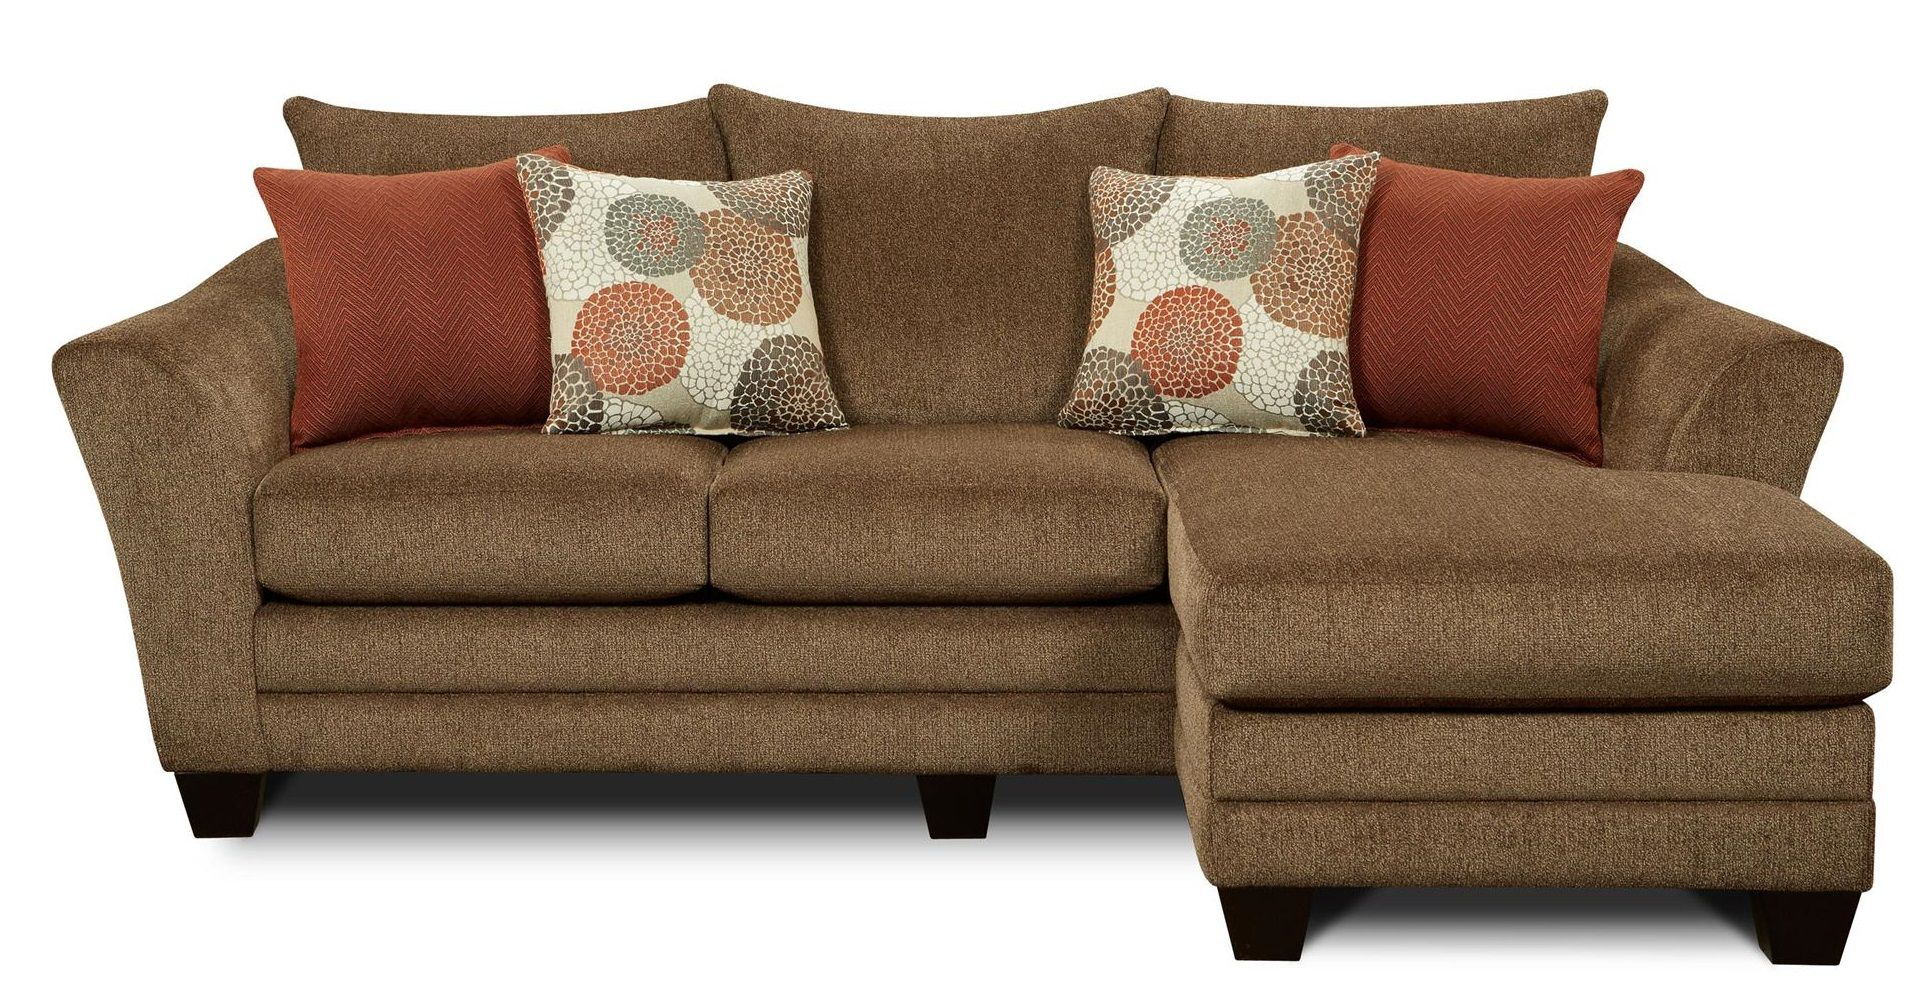 Best Bella Sofa Chaise 9728 Sofas From Fusion At 640 x 480